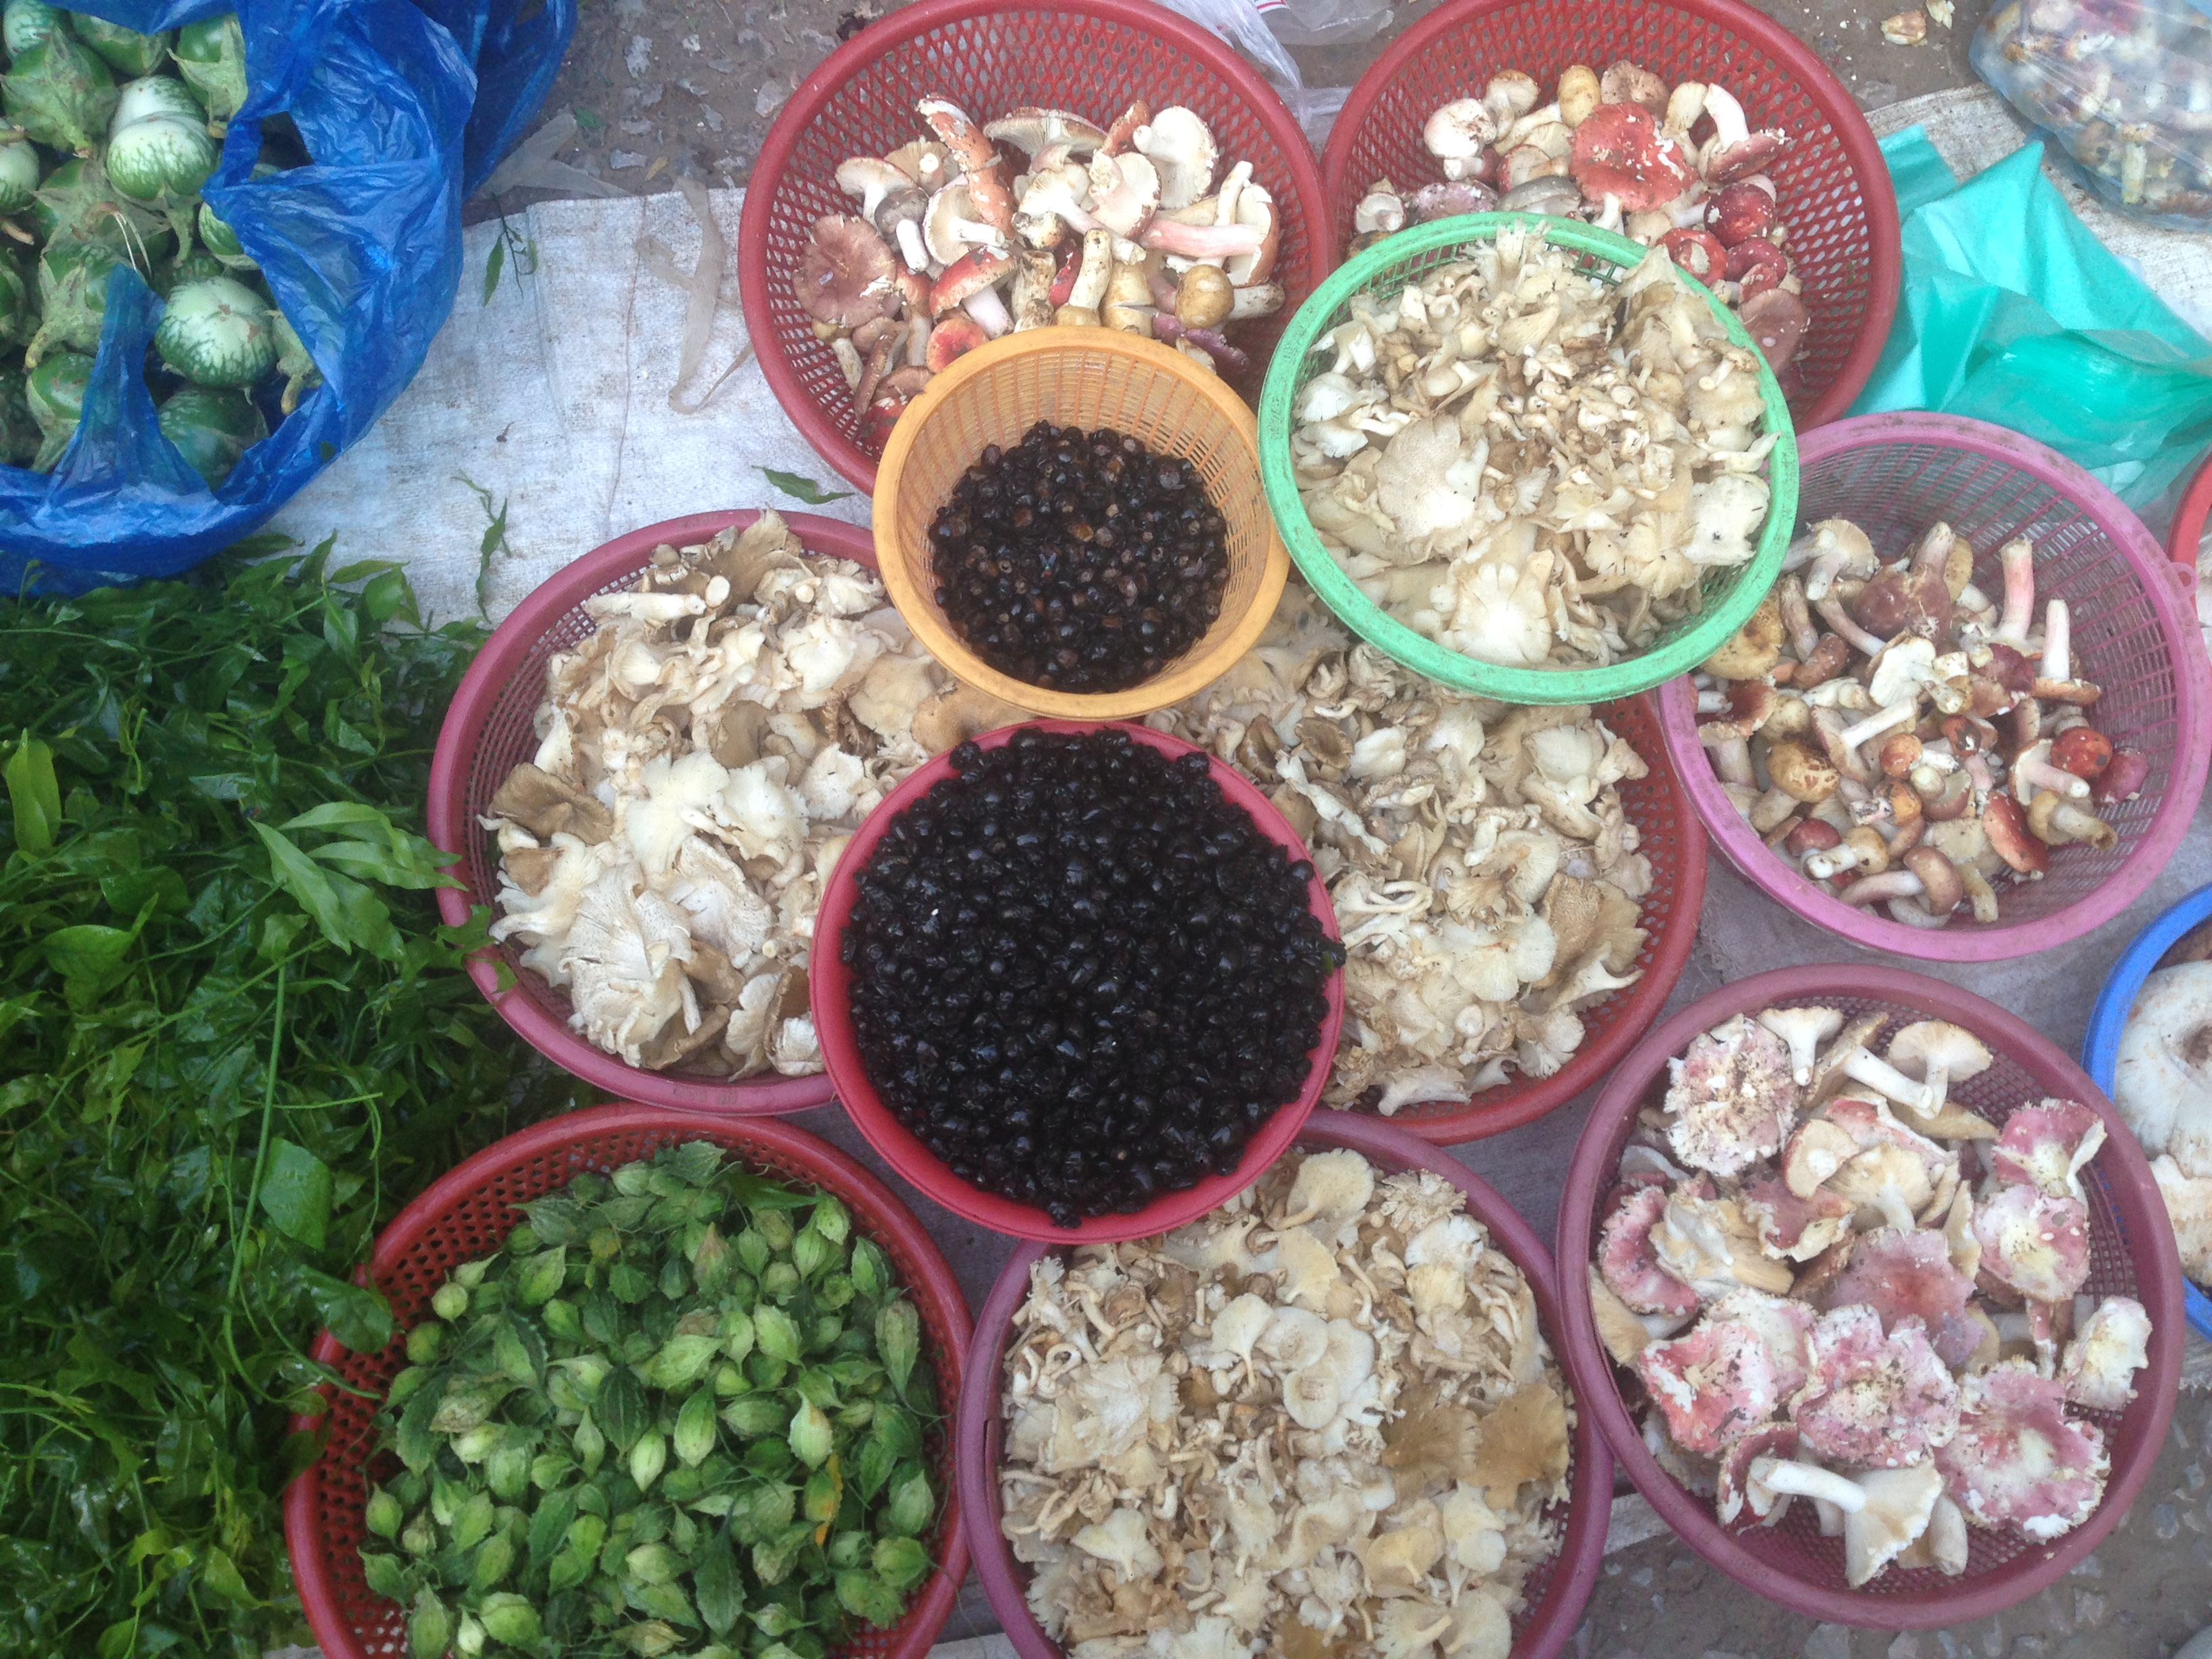 unusual-stuff-in-local-market-luang-prabang